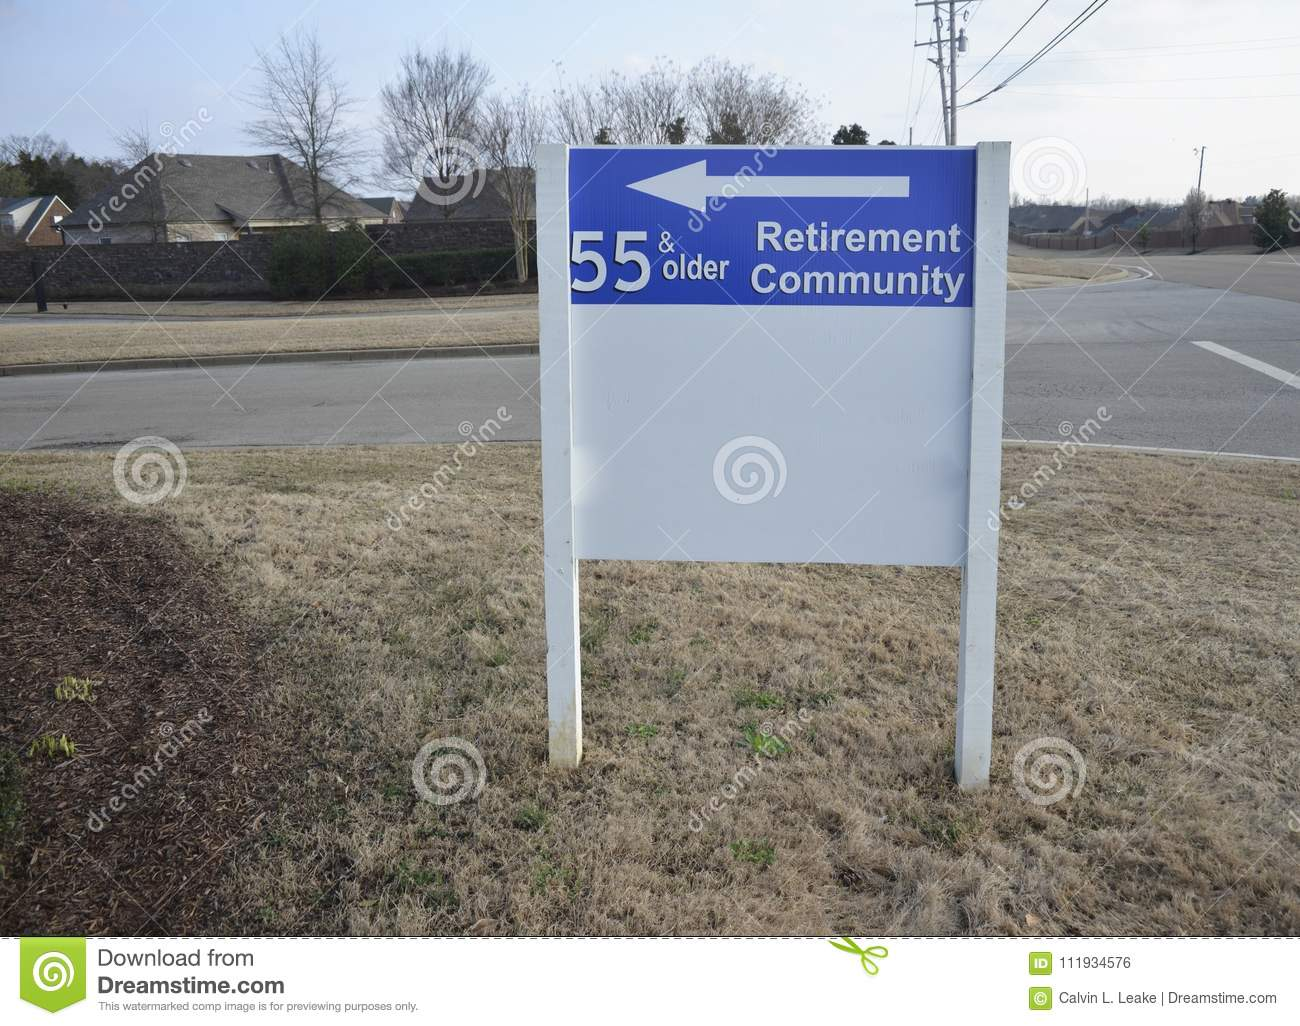 A Retirement Community Where All Residents Are Over The Age Of 55 And Older Senior Citizens